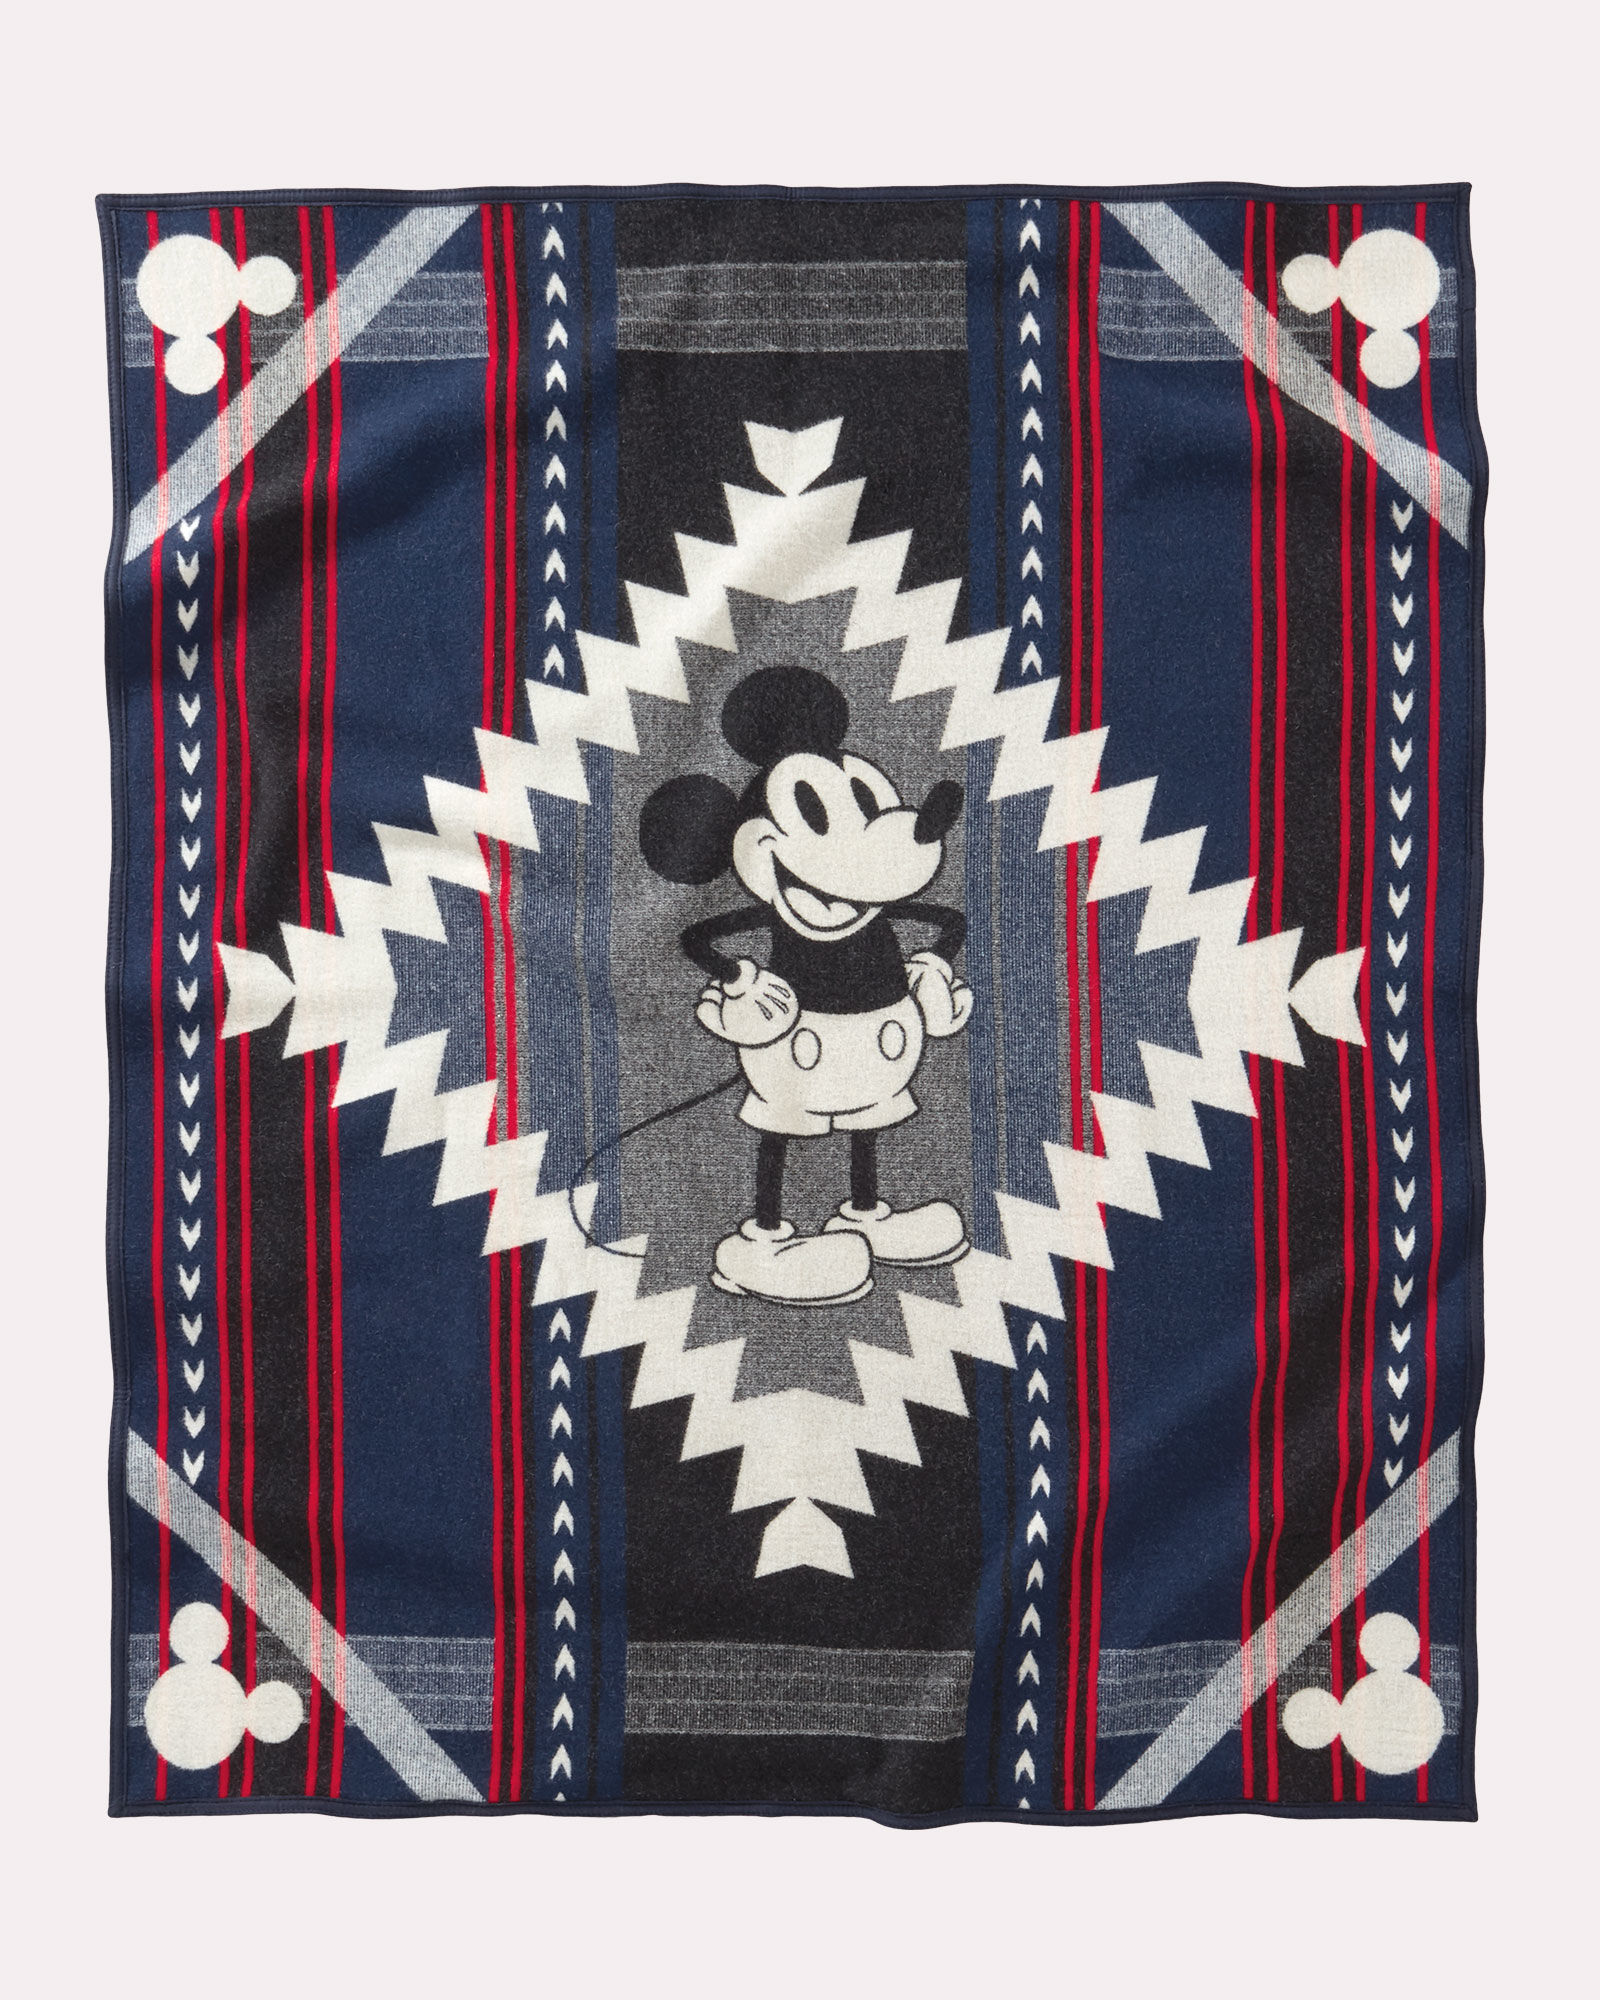 The Mickey's Debut blanket, by Pendleton